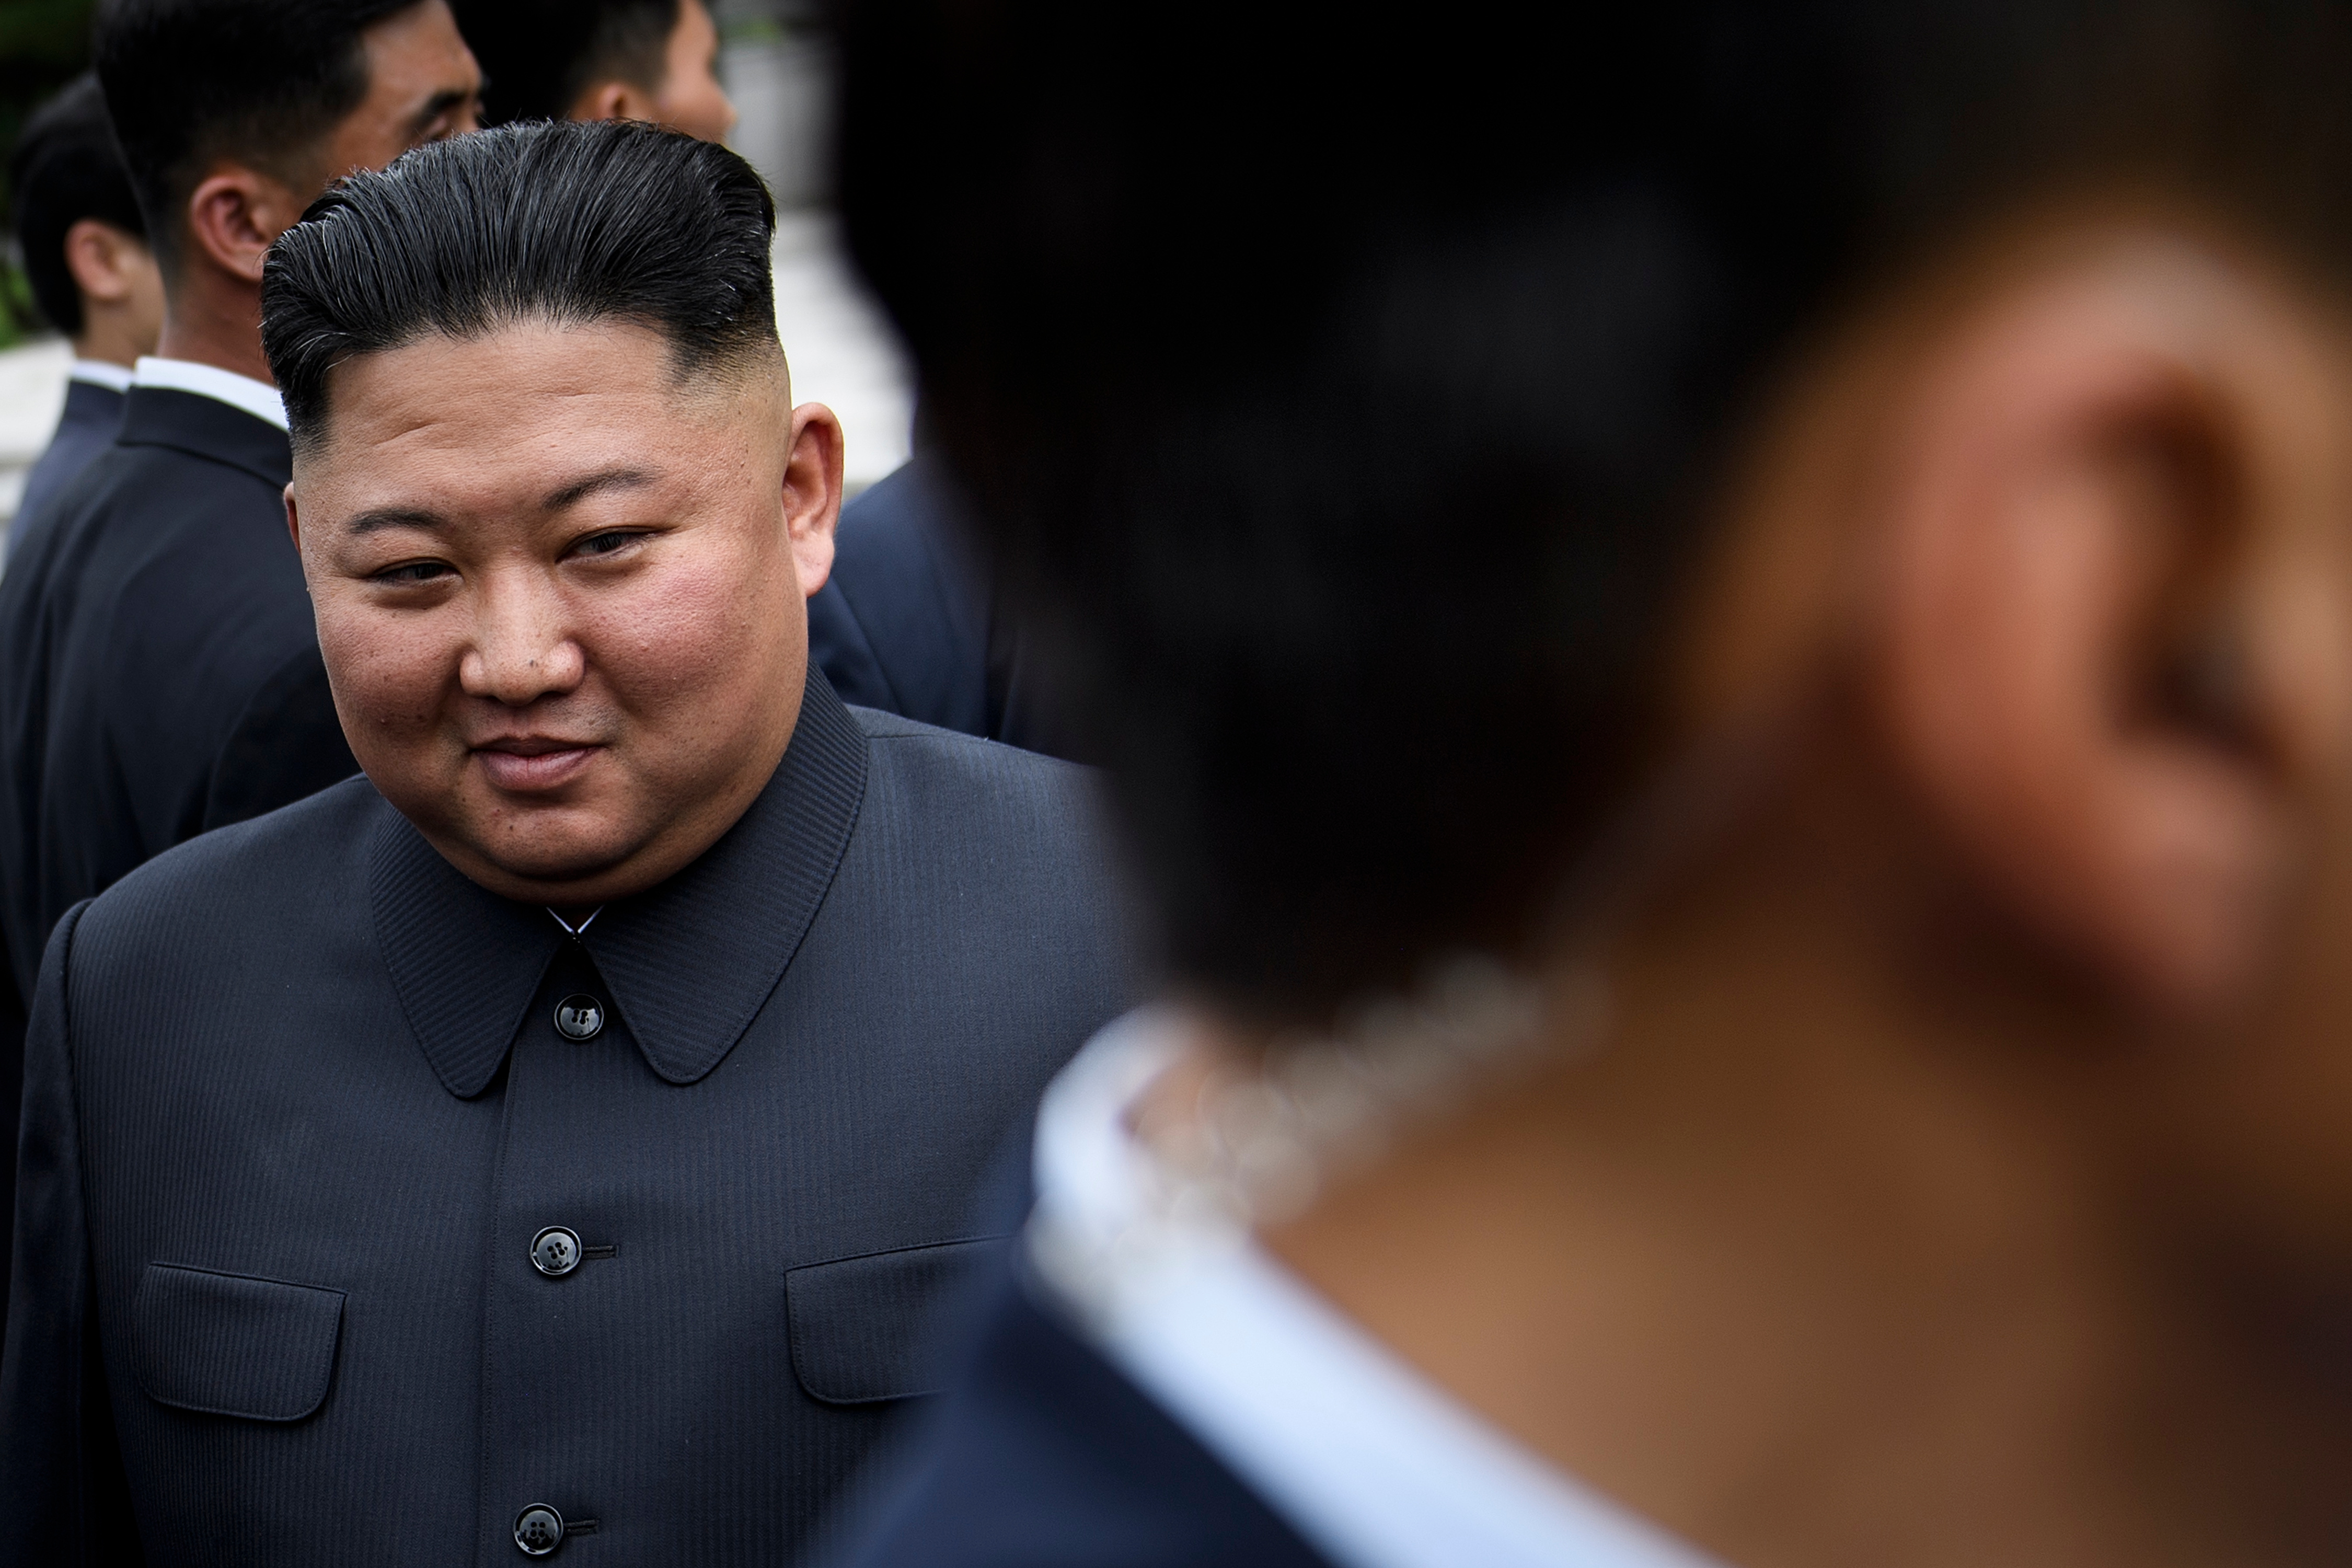 North Korea's leader Kim Jong Un walks to a meeting with U.S. President Donald Trump in the Demilitarized Zone (DMZ) on June 30, 2019, in Panmunjom, Korea.